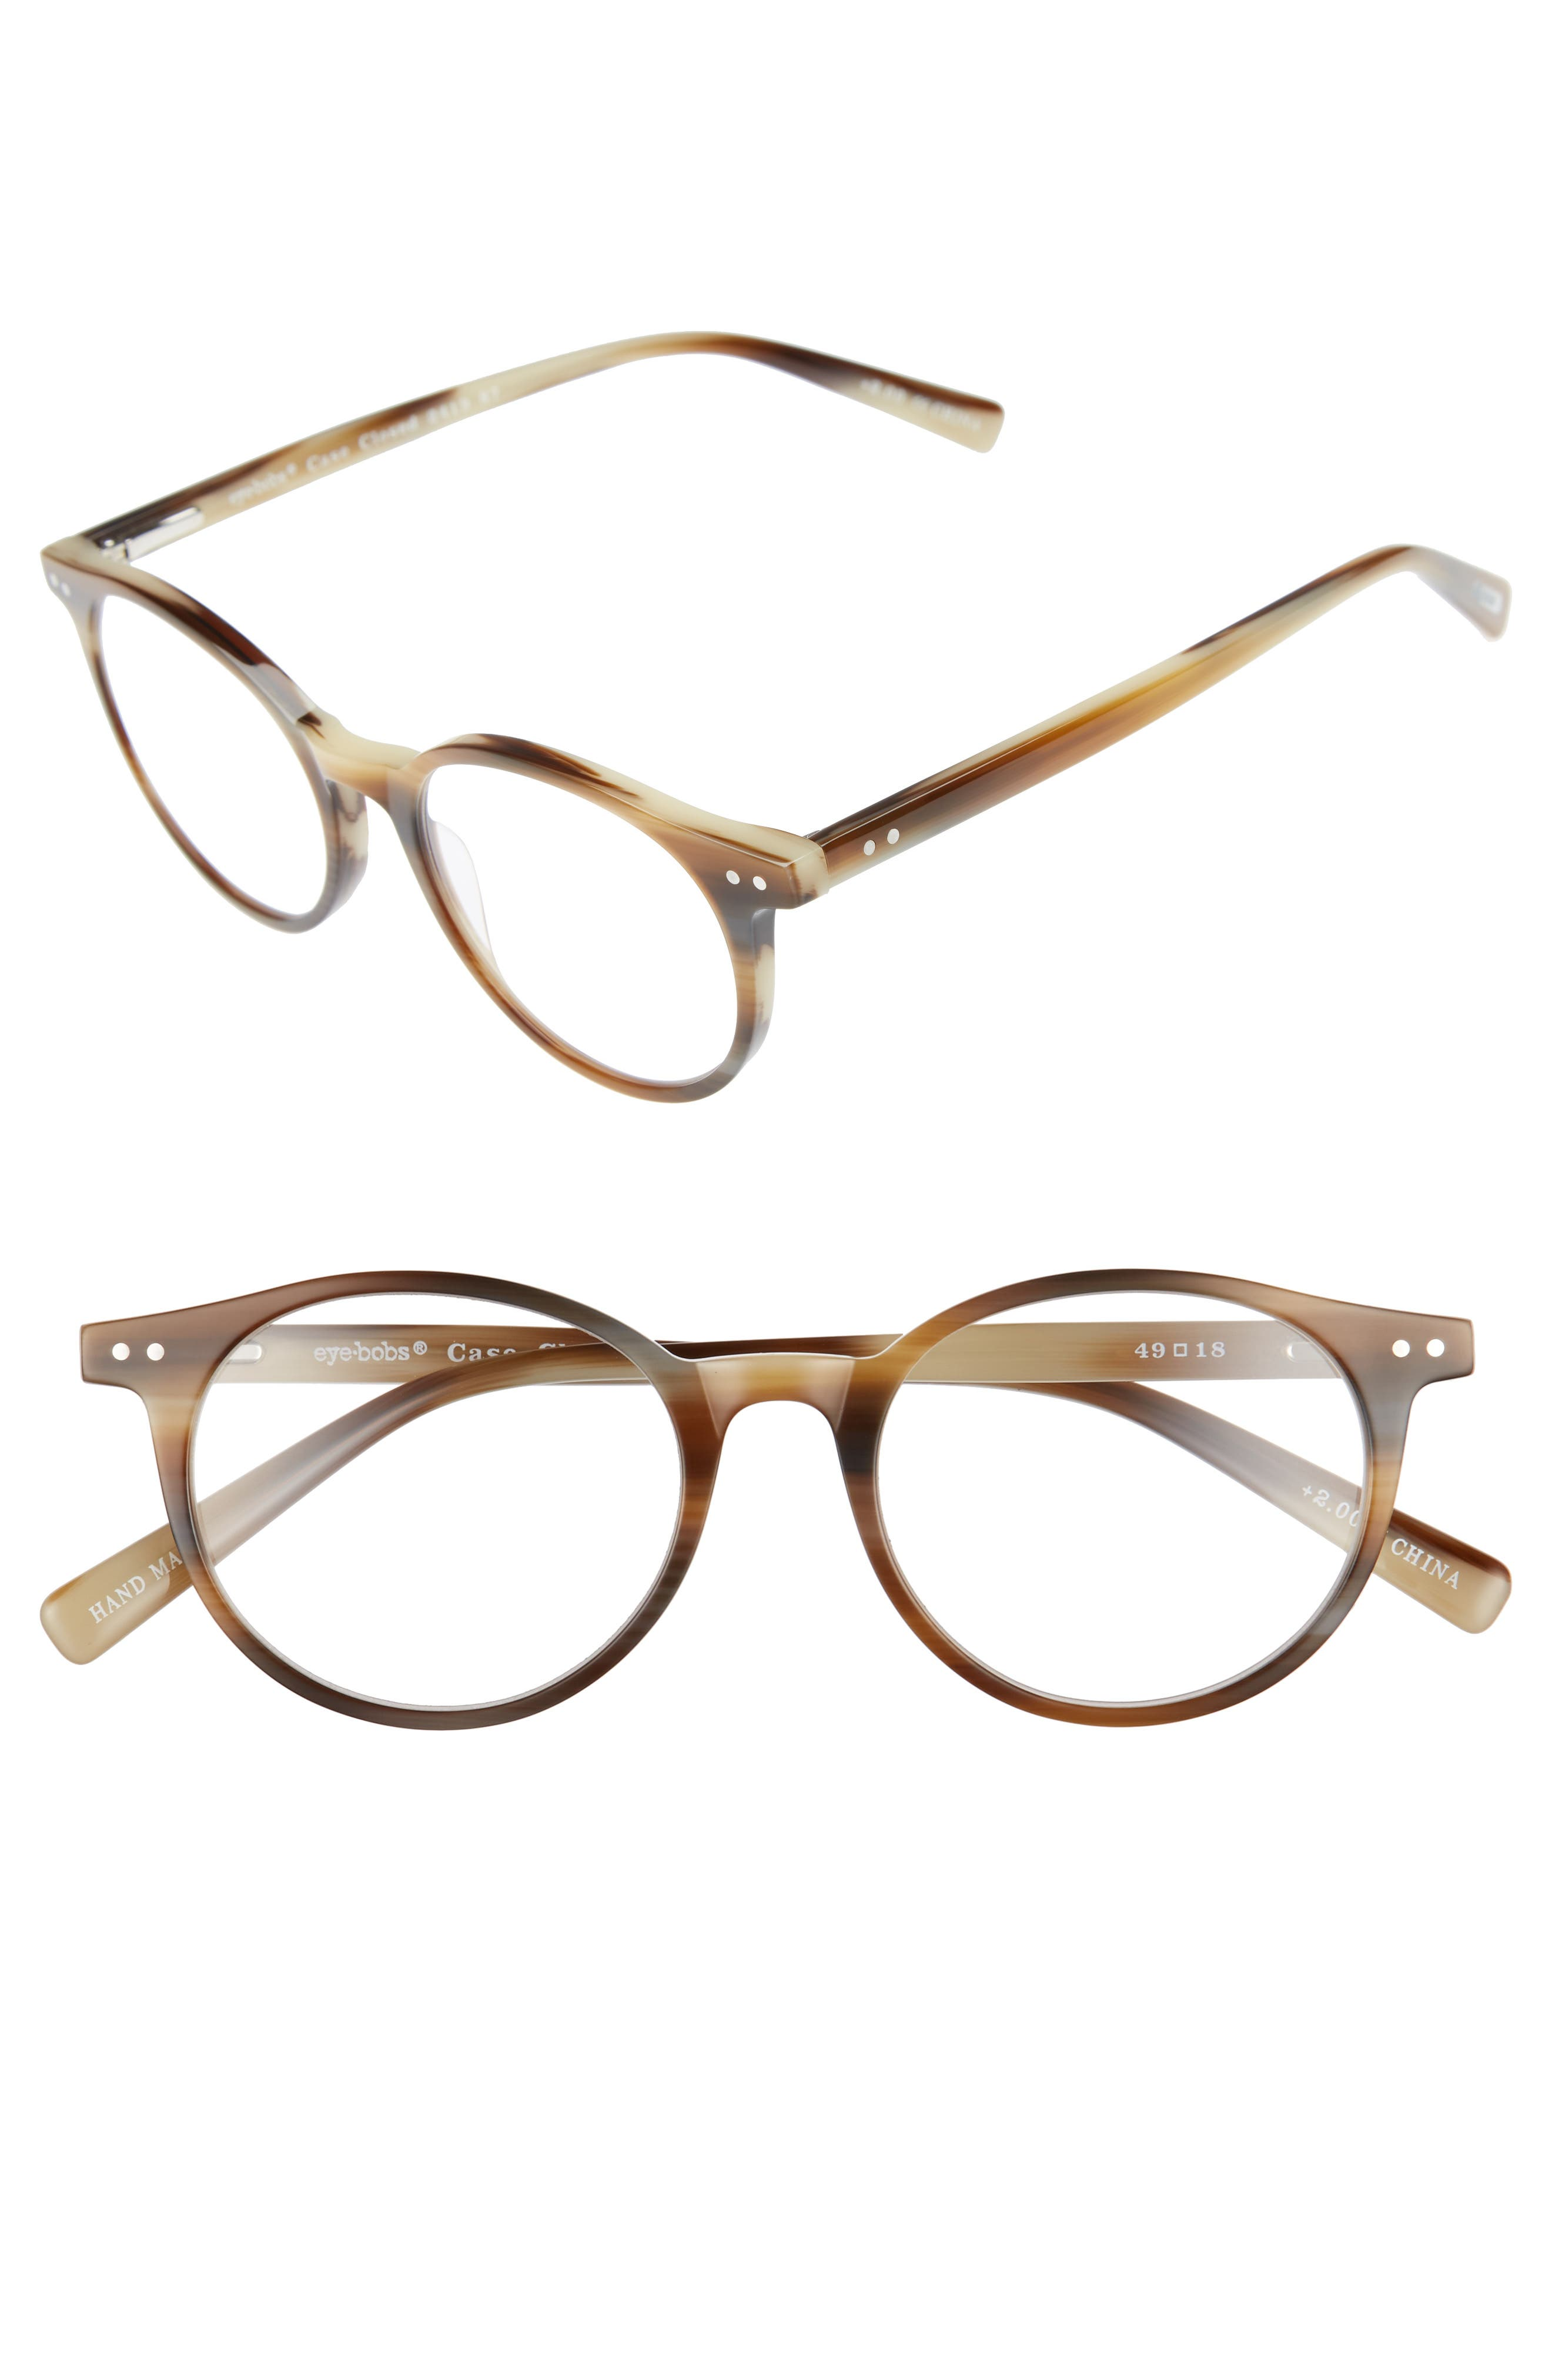 EYEBOBS Case Closed 49Mm Reading Glasses - Brown Horn